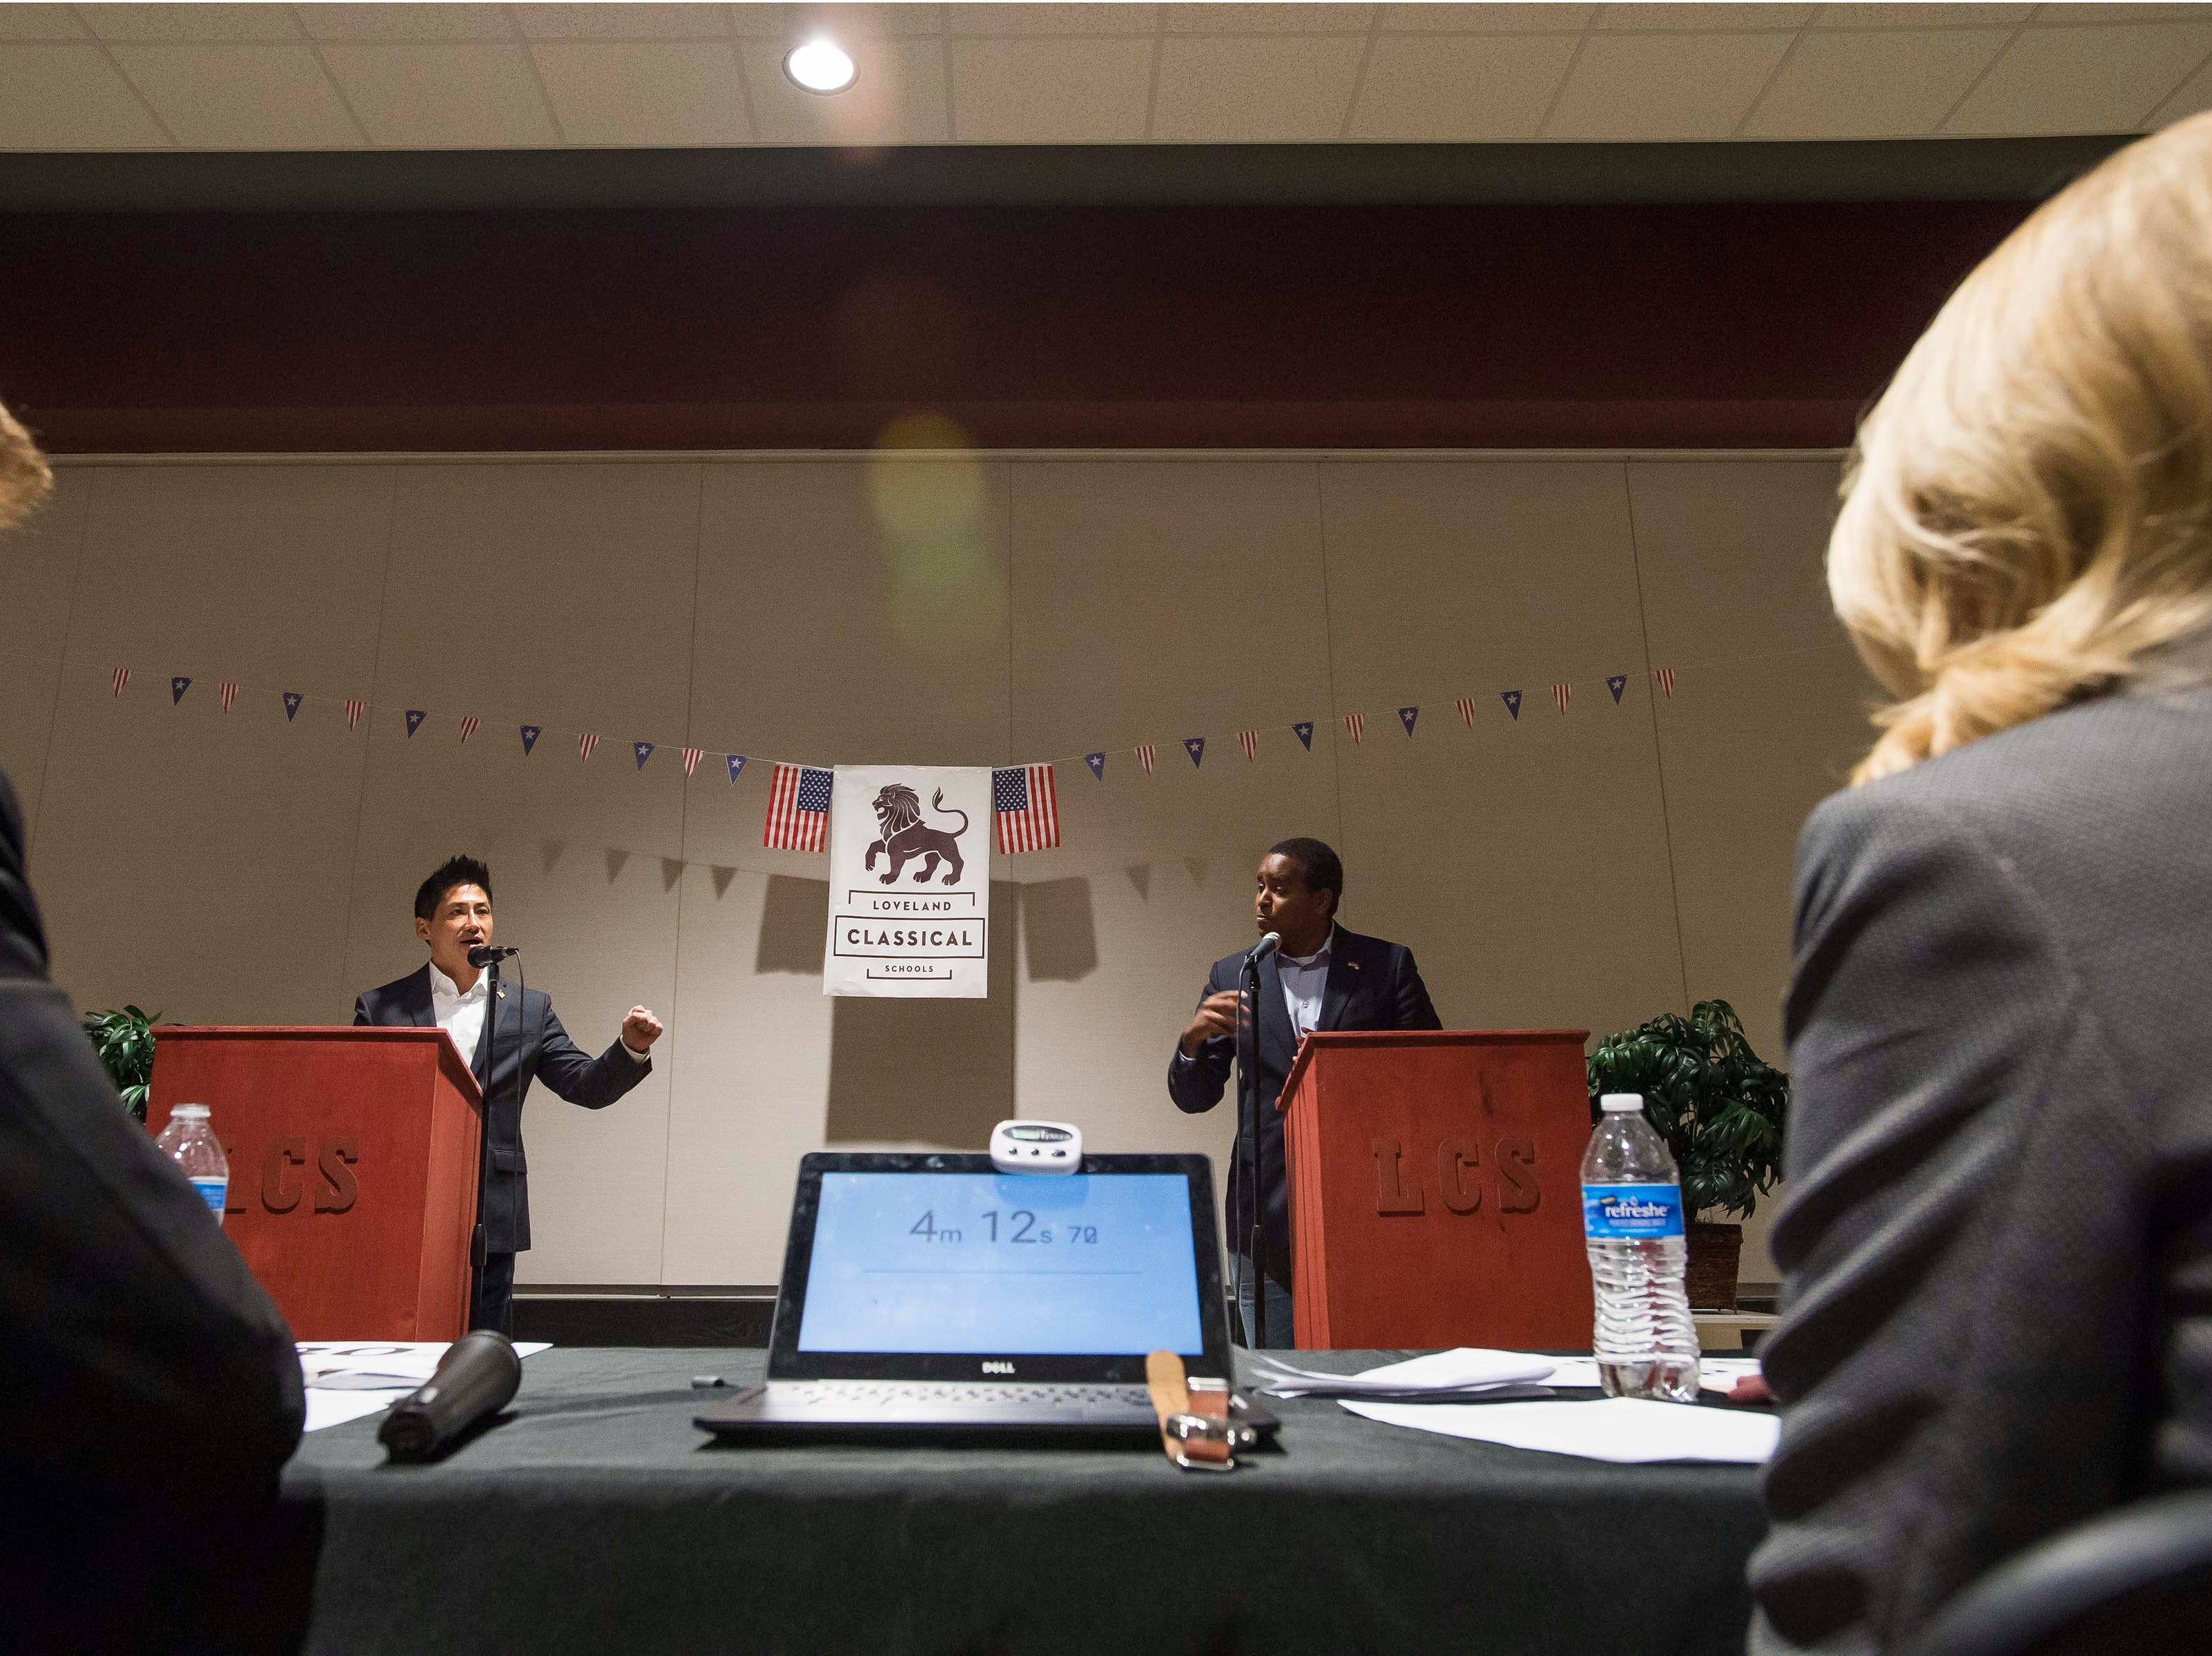 Colorado's 2nd Congressional District Republican nominee Peter Yu, center-left, and Democratic nominee Joe Neguse, center-right, cross-examine each other while moderators, Tobias Hild, left, and Zipporah Rowe, right, keep an eye on the timer on Wednesday, Sept. 26, 2018, at the Loveland Classical Schools in Loveland, Colo.